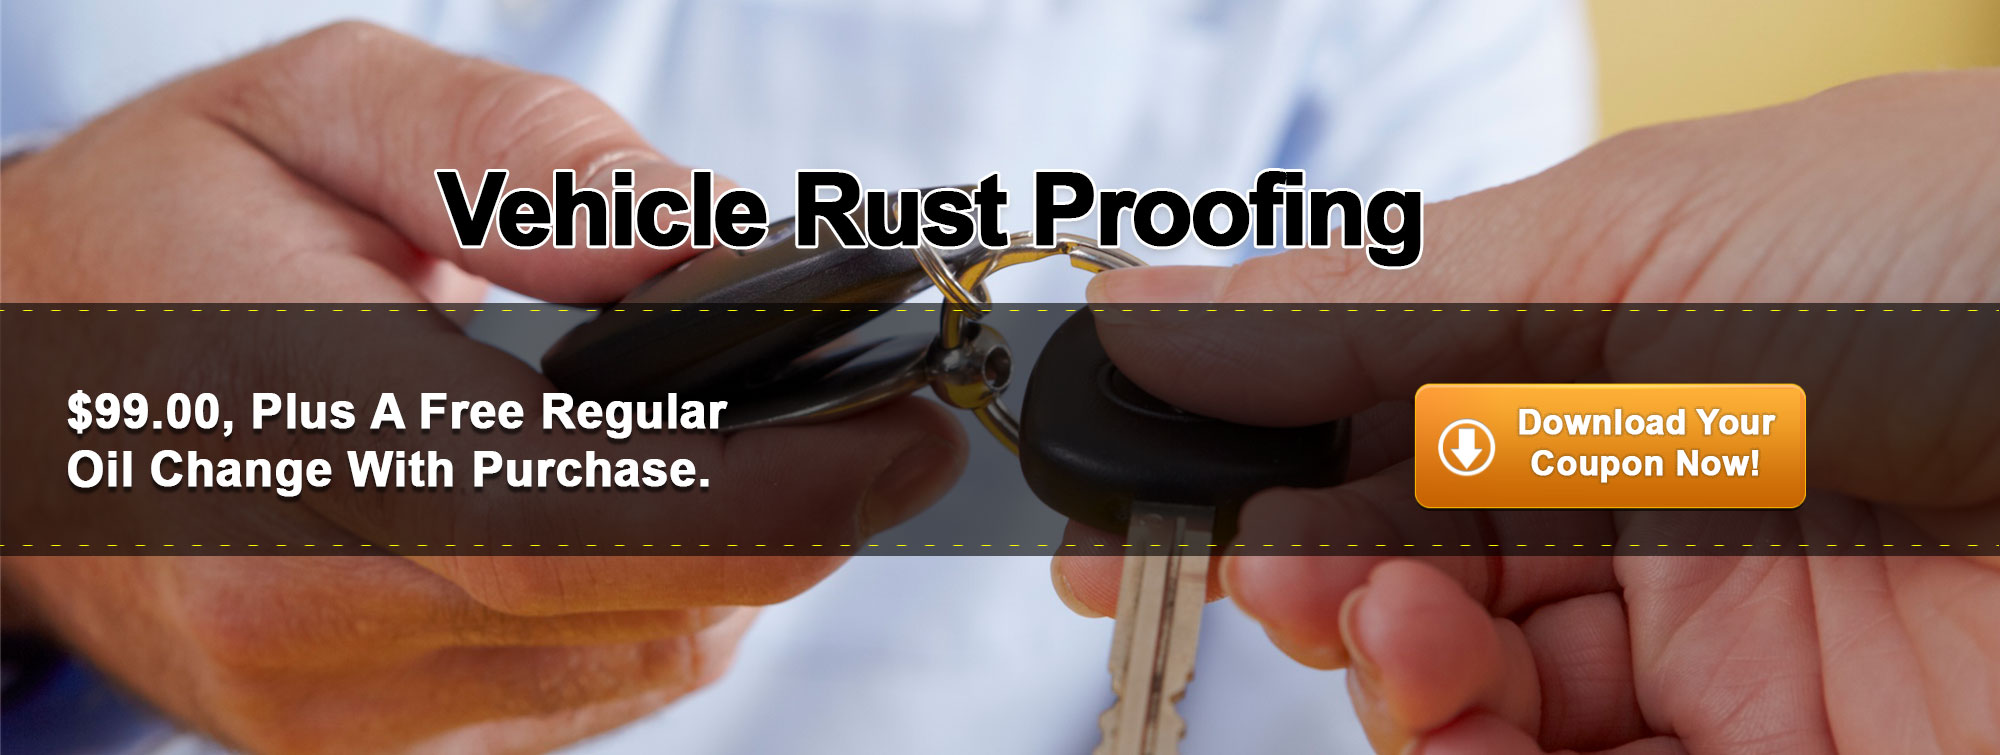 Economy Lube Rust Proofing